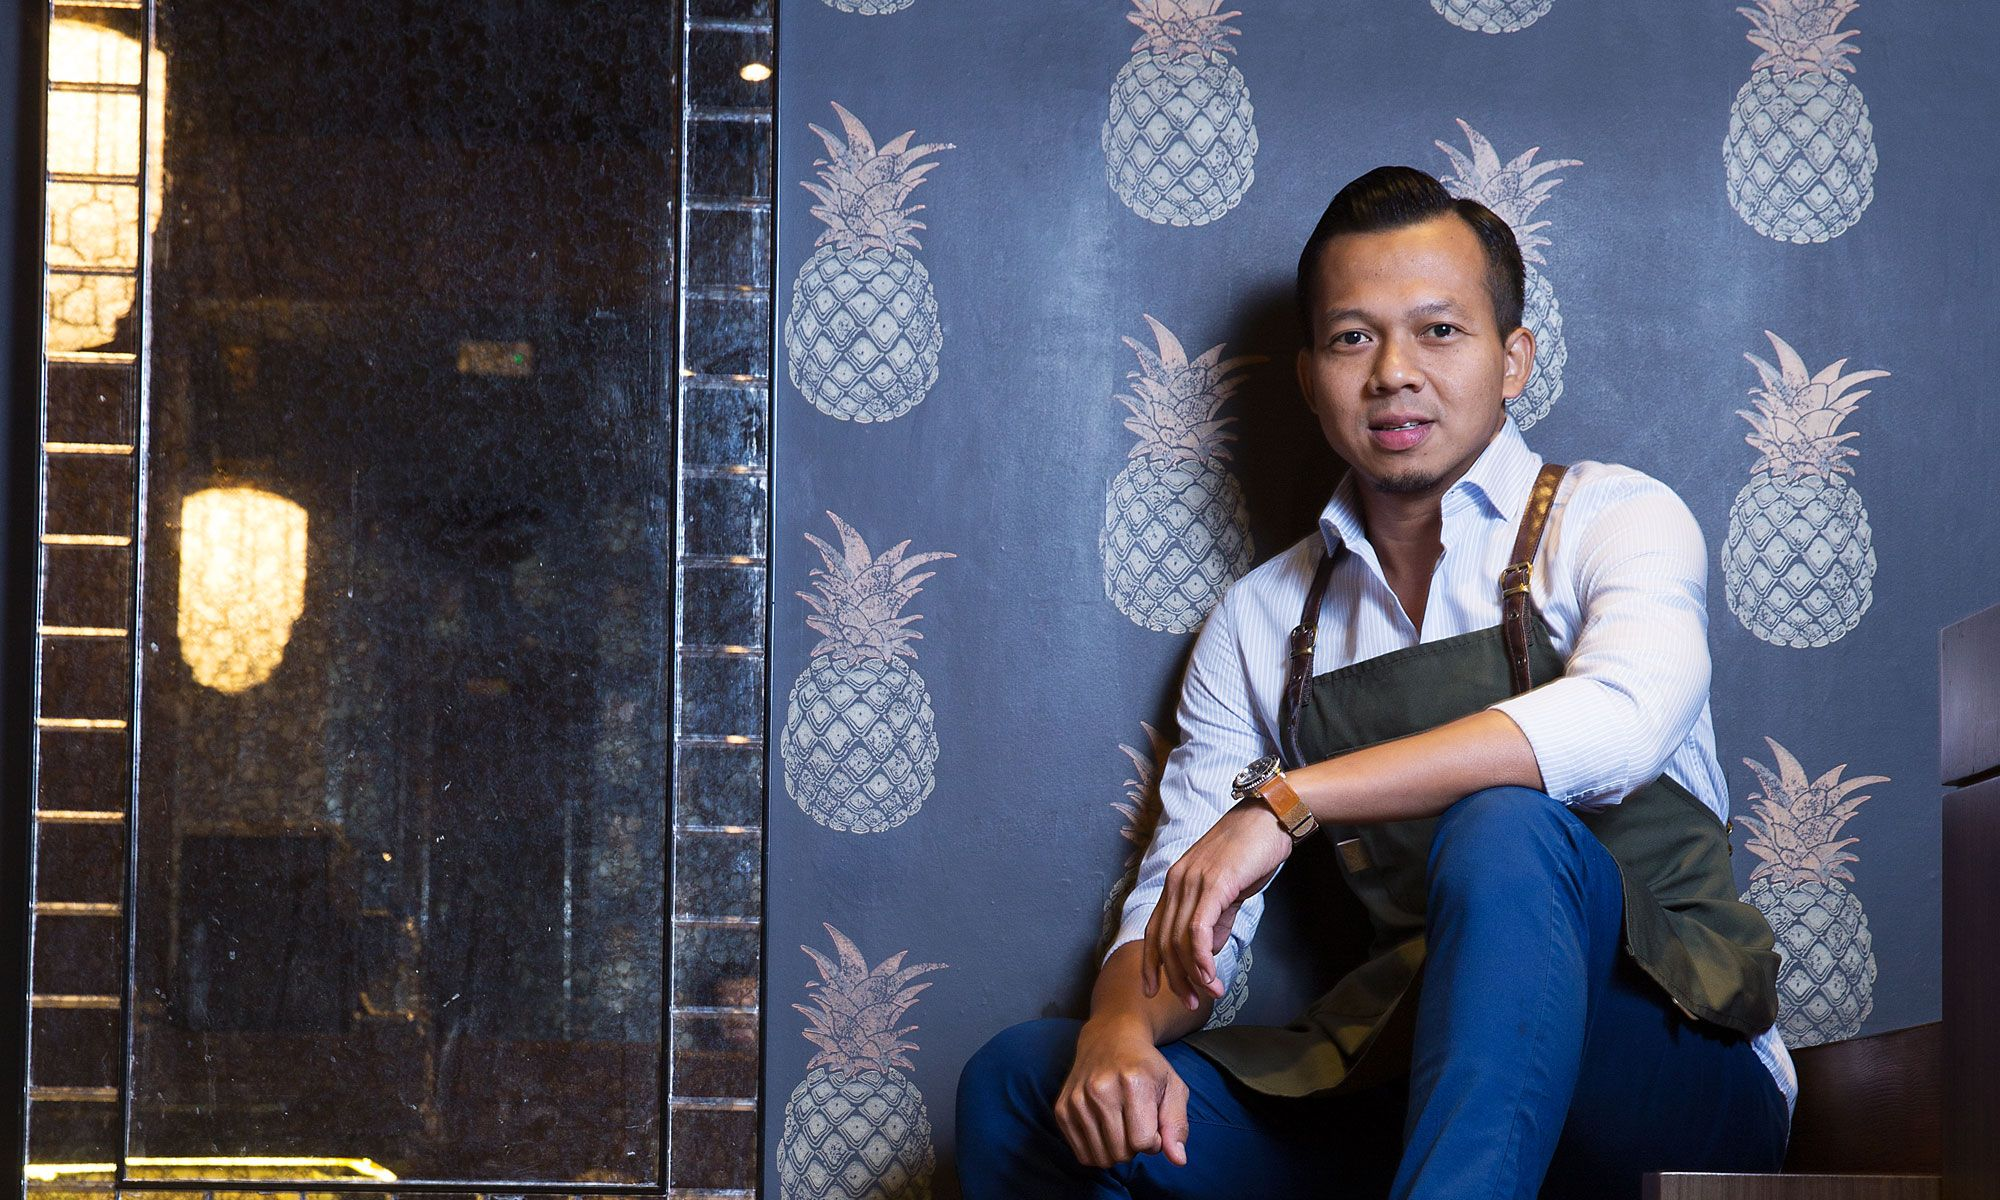 The Old Man's Agung Prabowo To Open New Cocktail Bar This March